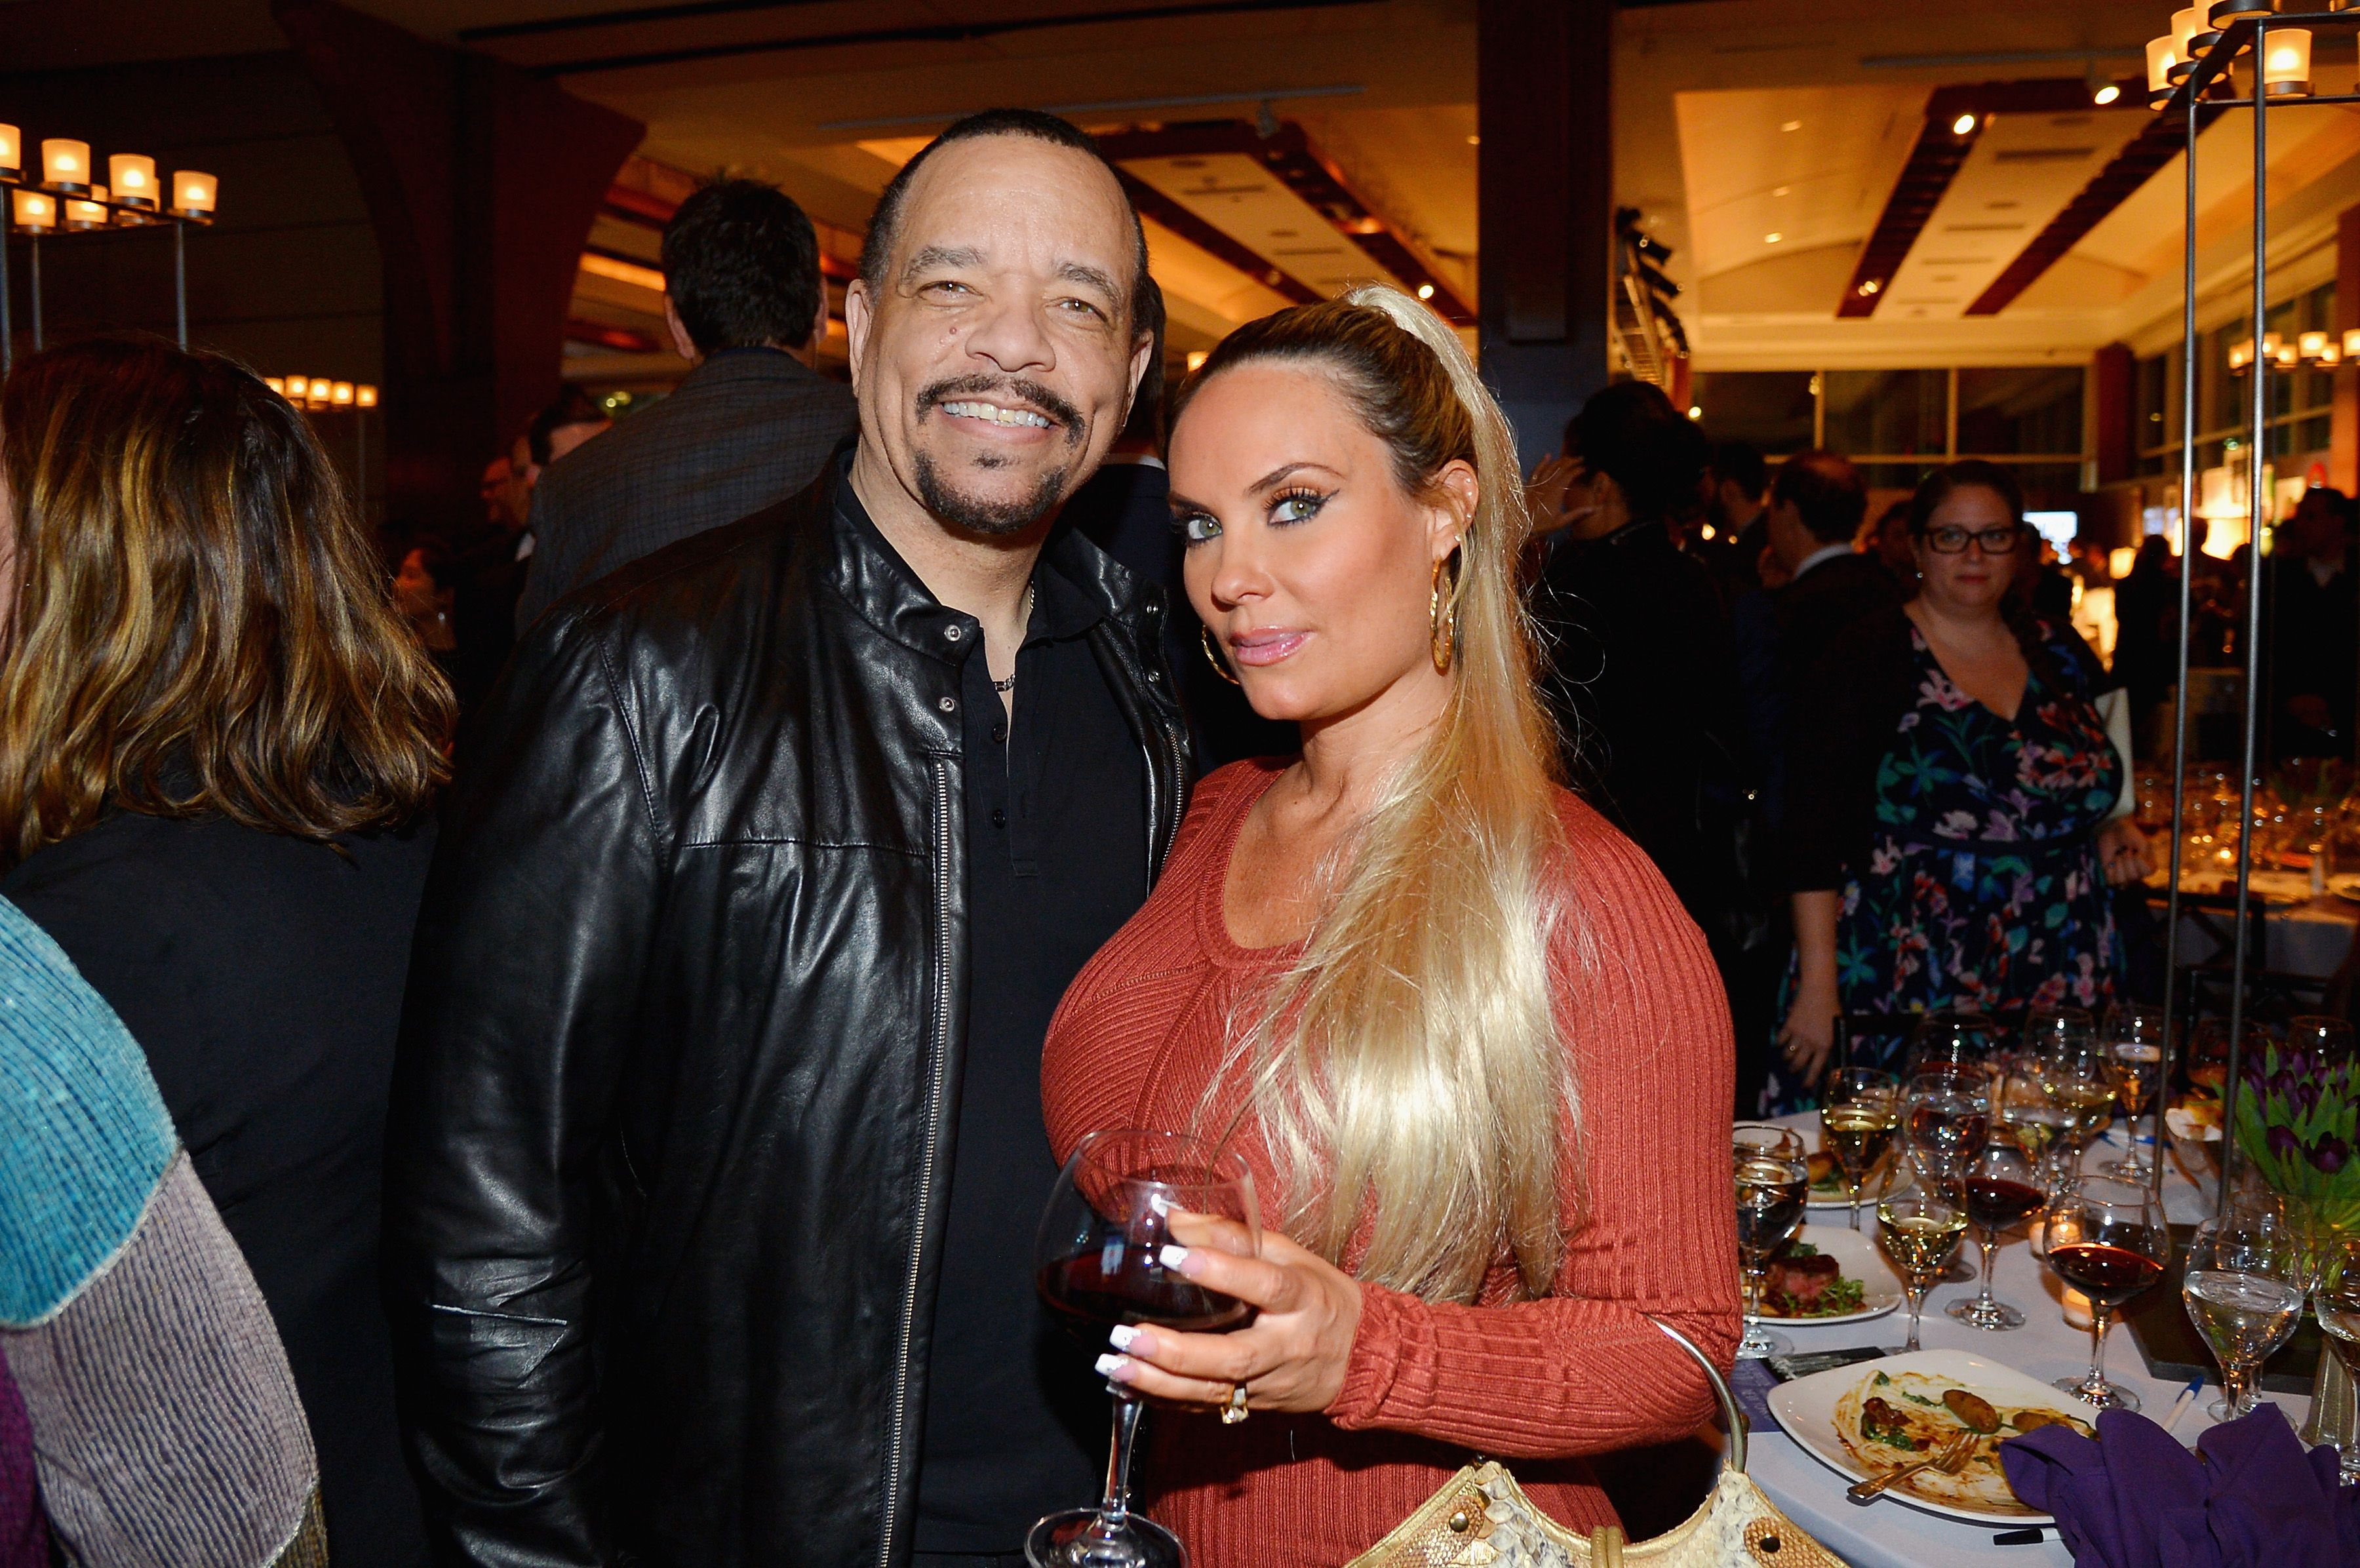 Ice-T and Coco Austin at the Bailey House Gala & Auction in New York City in 2017. | Photo: Getty Images